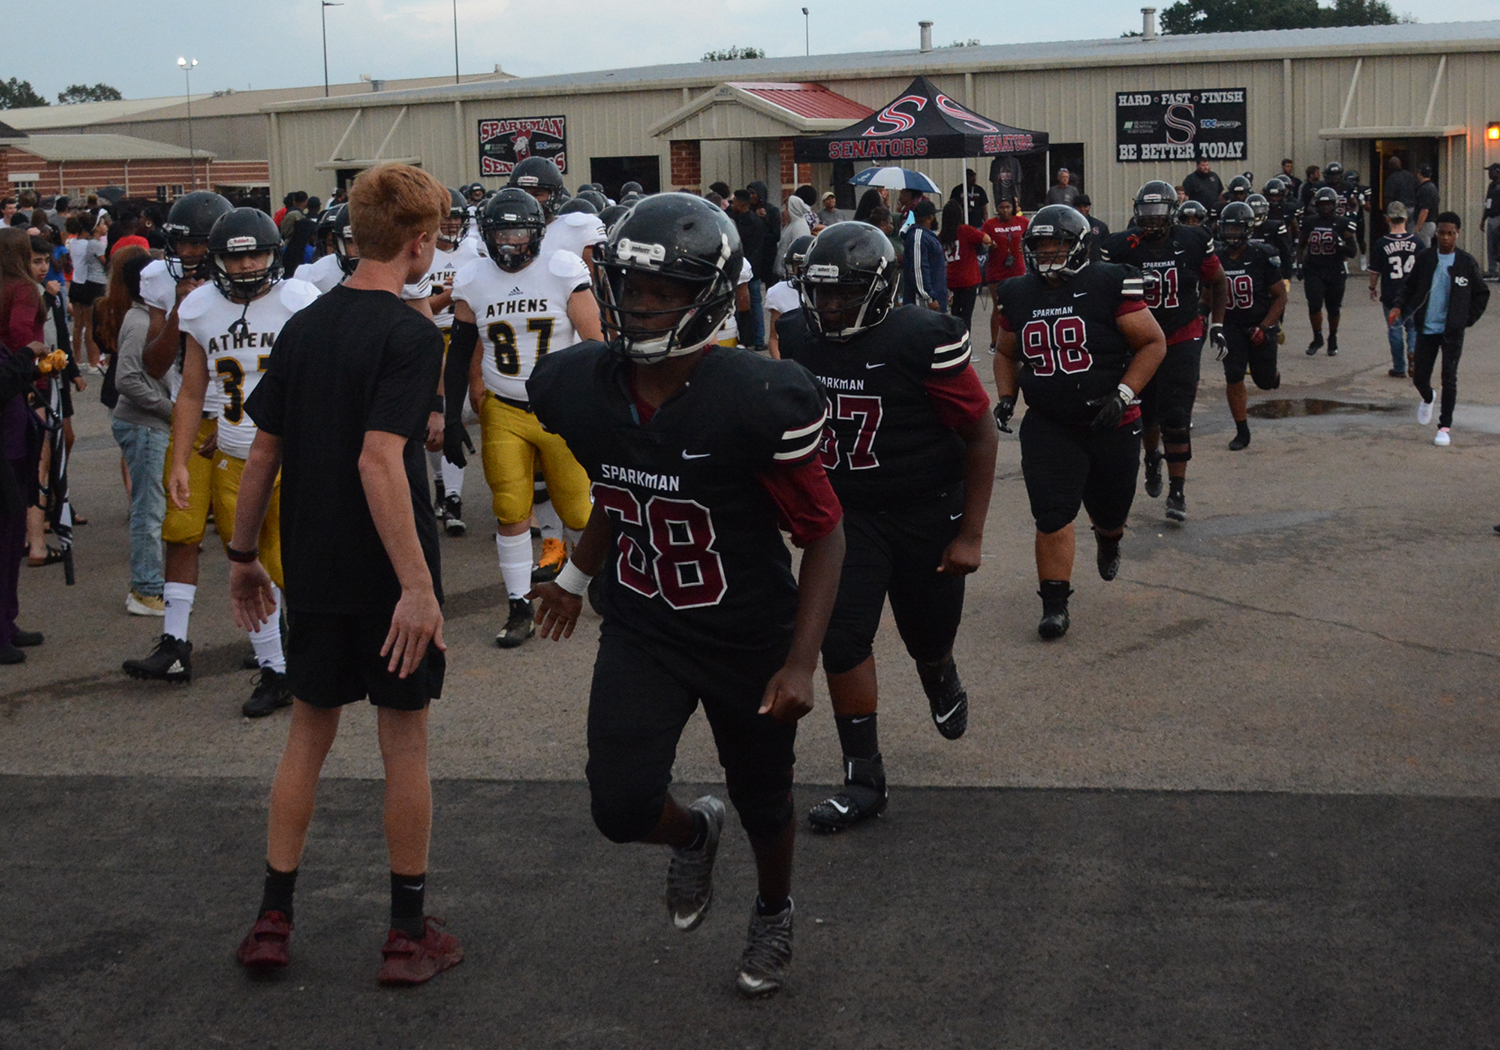 The football team takes the field after lightening delay. They defeated Athens 35-10 in the jamboree game.